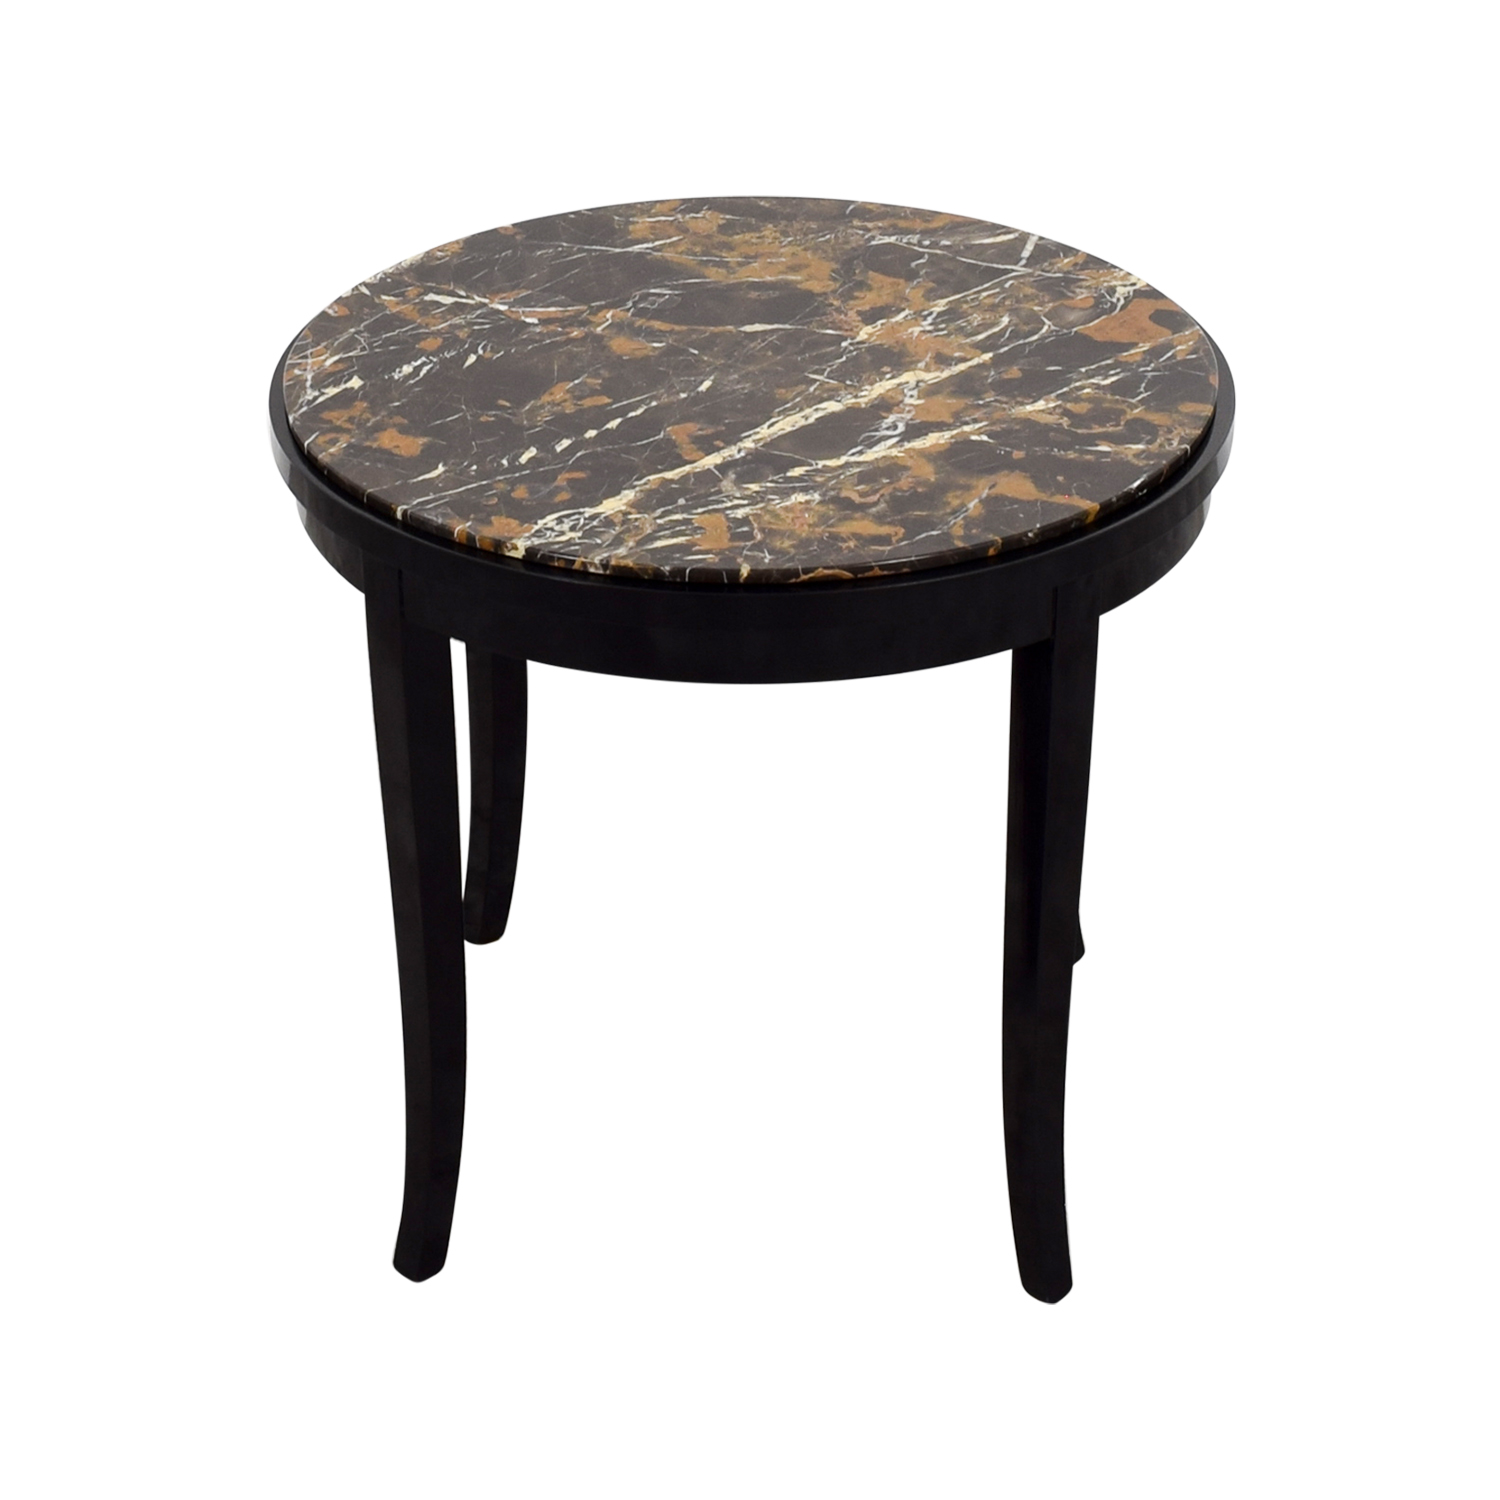 Terrific 90 Off Marble Top Coffee Table Tables Evergreenethics Interior Chair Design Evergreenethicsorg